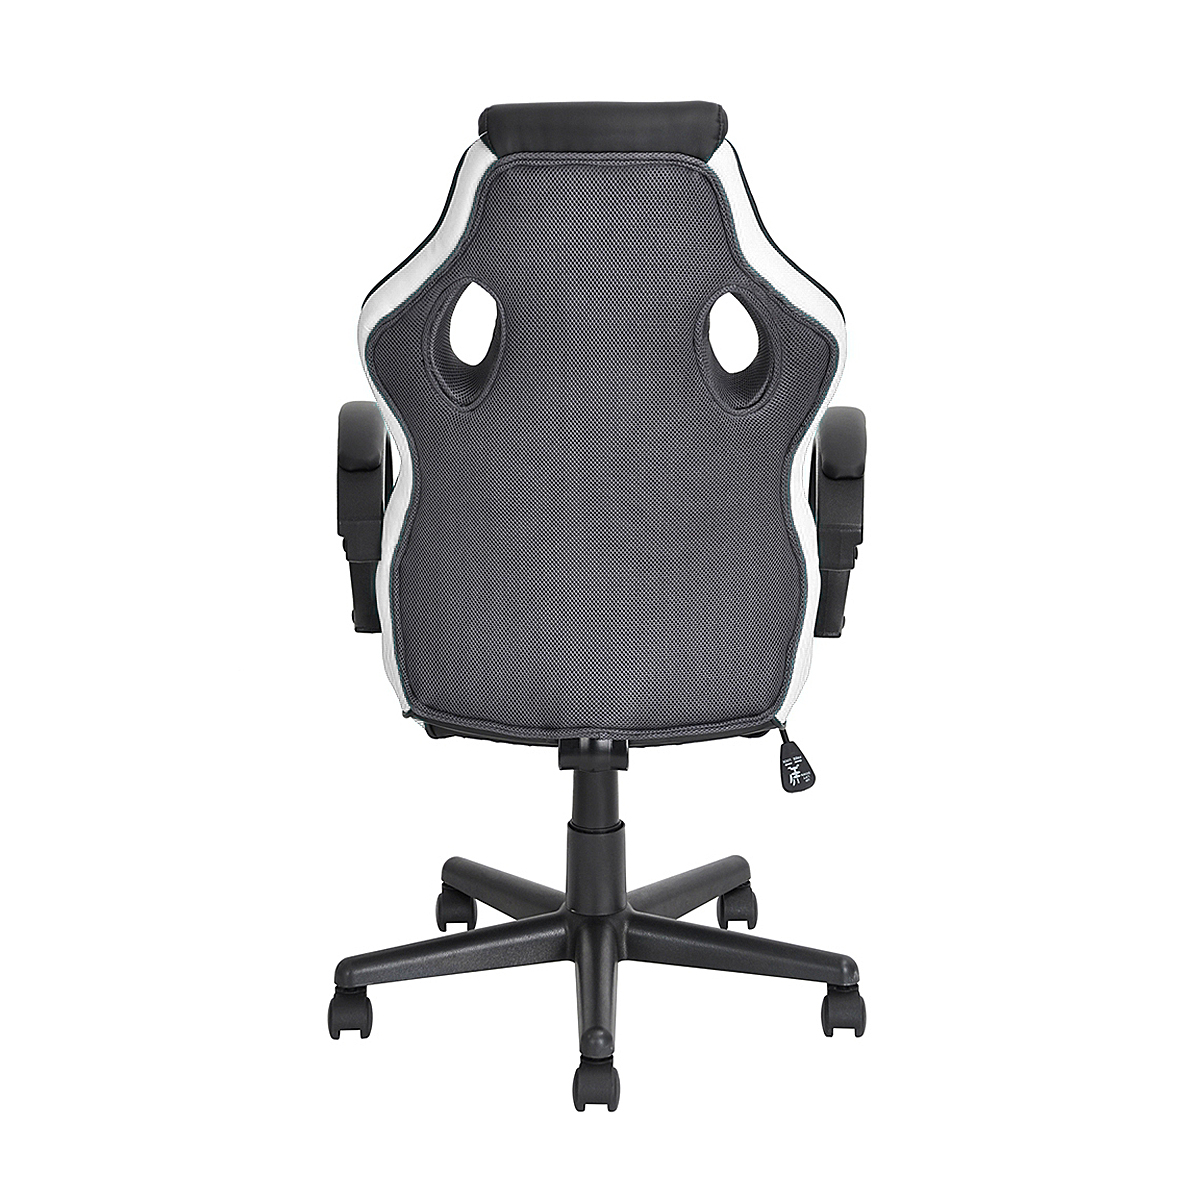 thumbnail 36 - Gaming Racing Chair Office High Back Ergonomic Computer Desk Swivel PU Leather